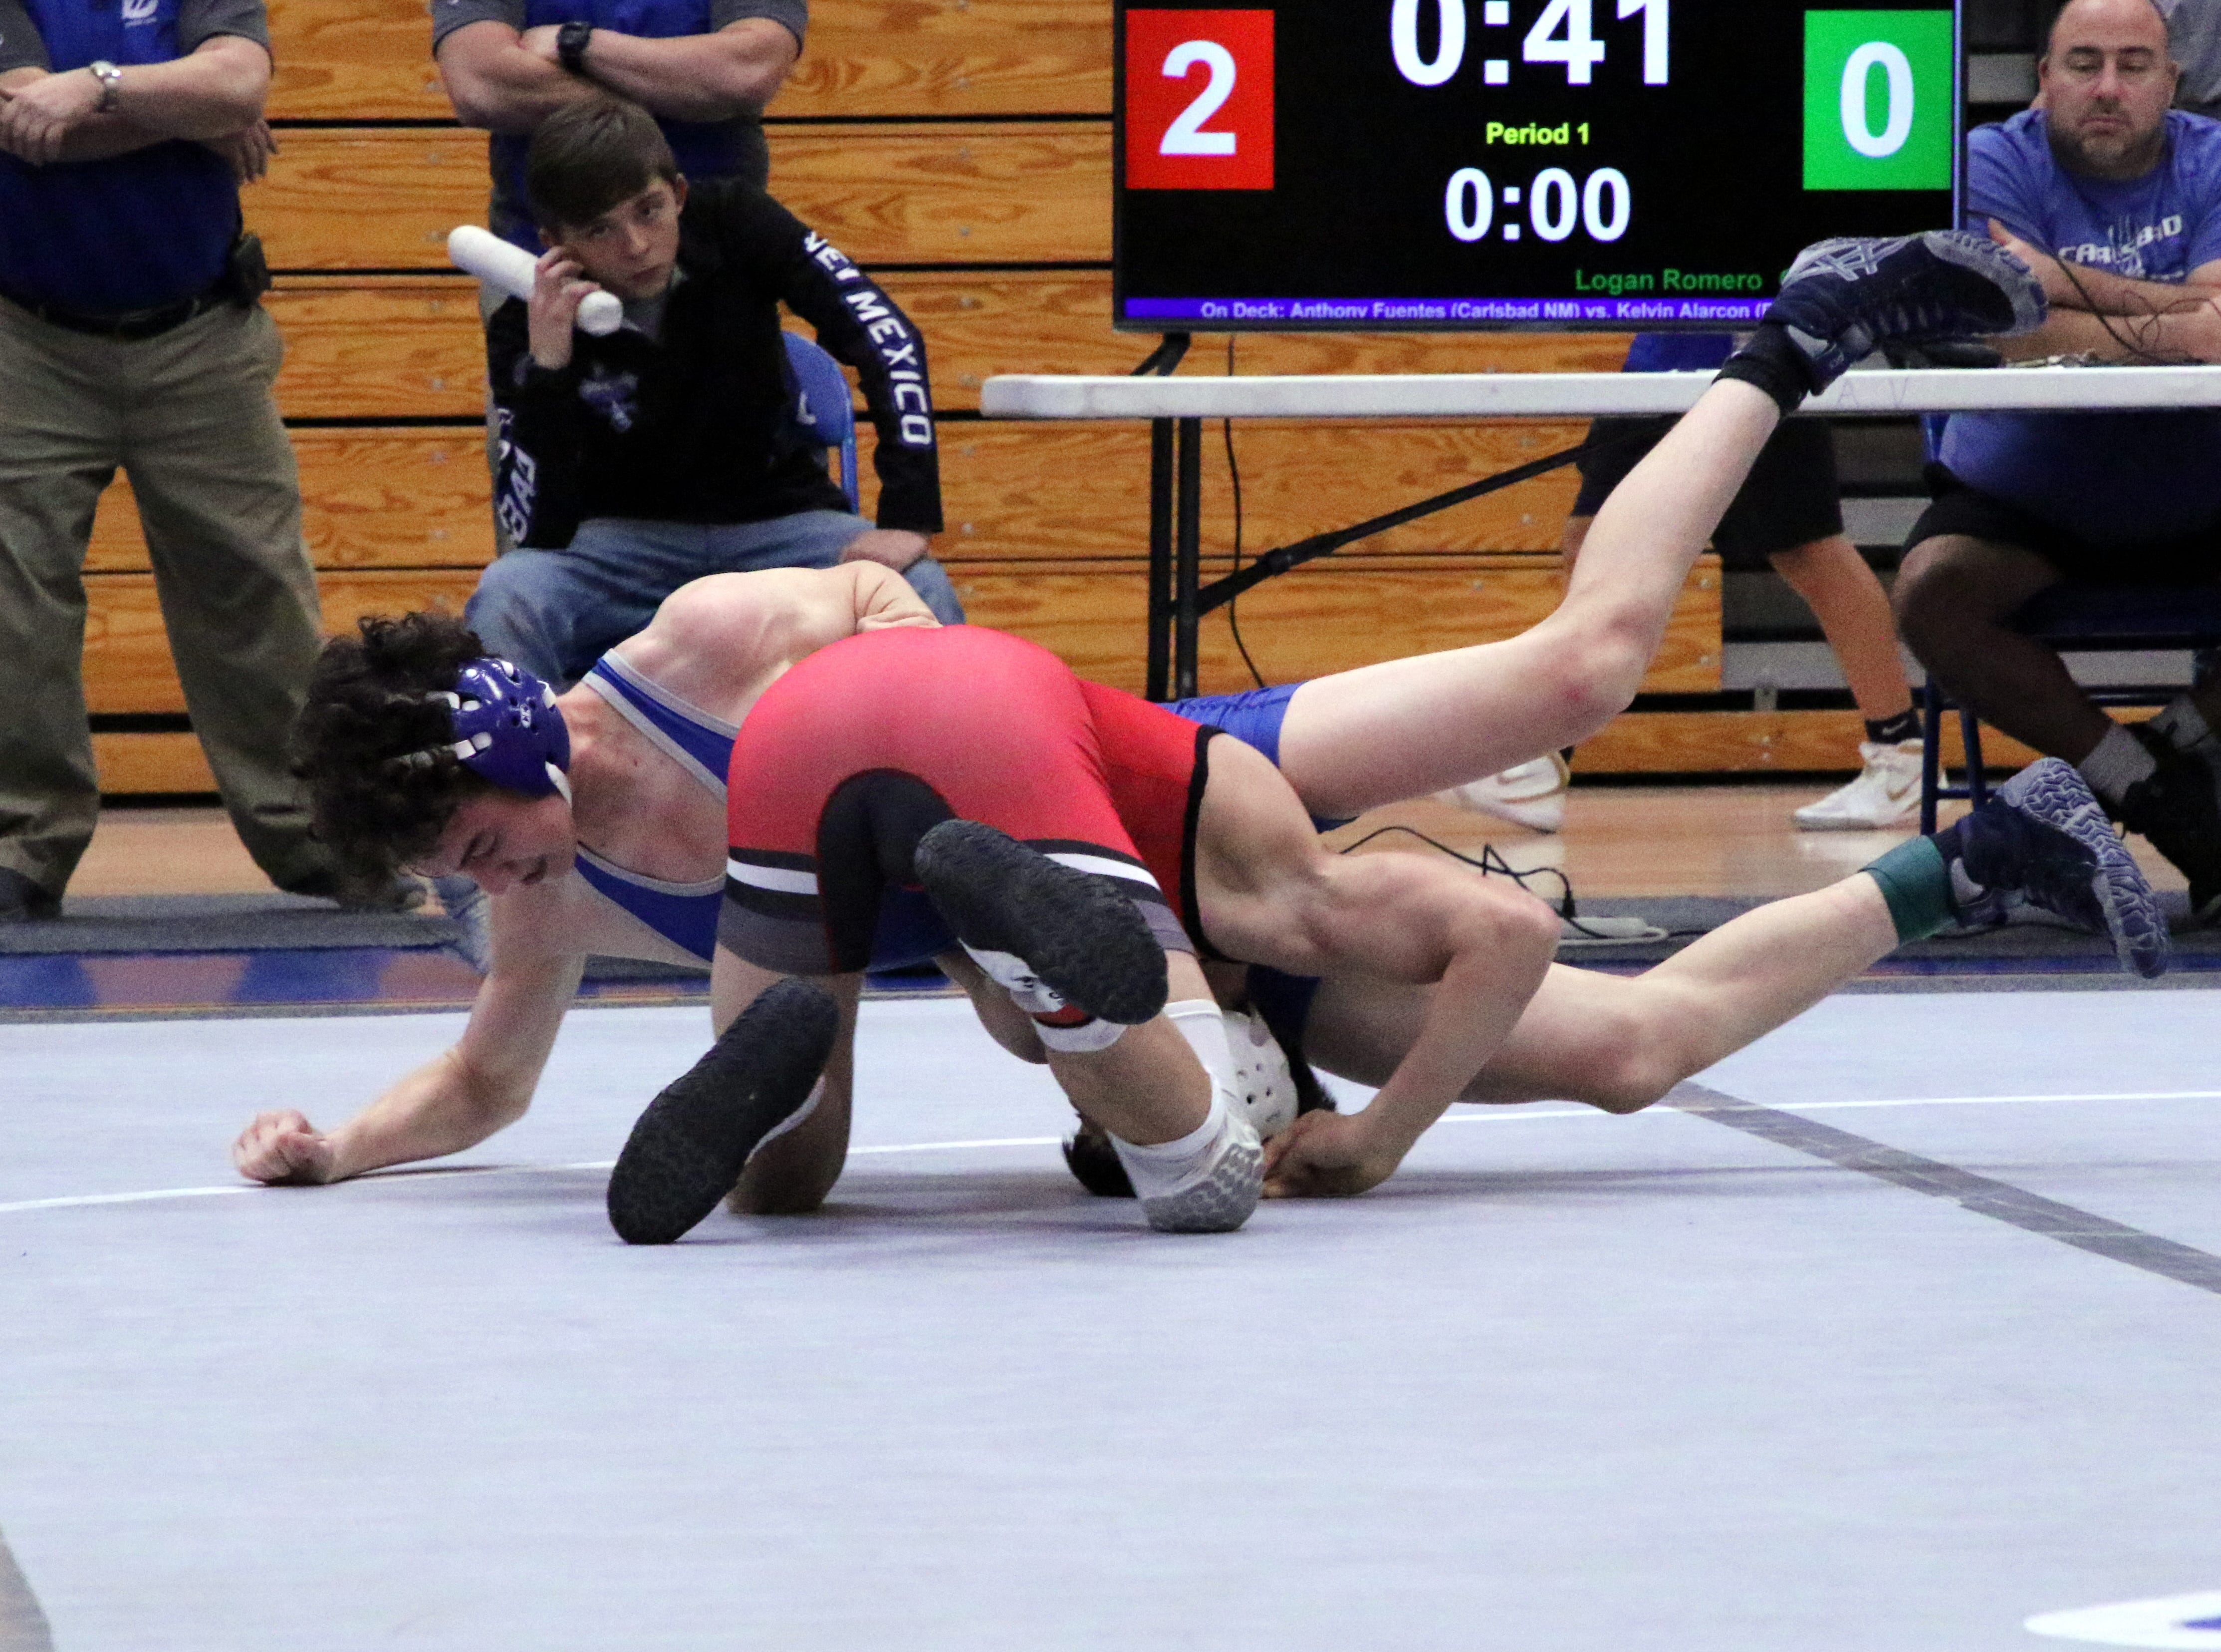 Logan Romero takes down Roswell's Jaymah Cherinko in the 113-pound division.